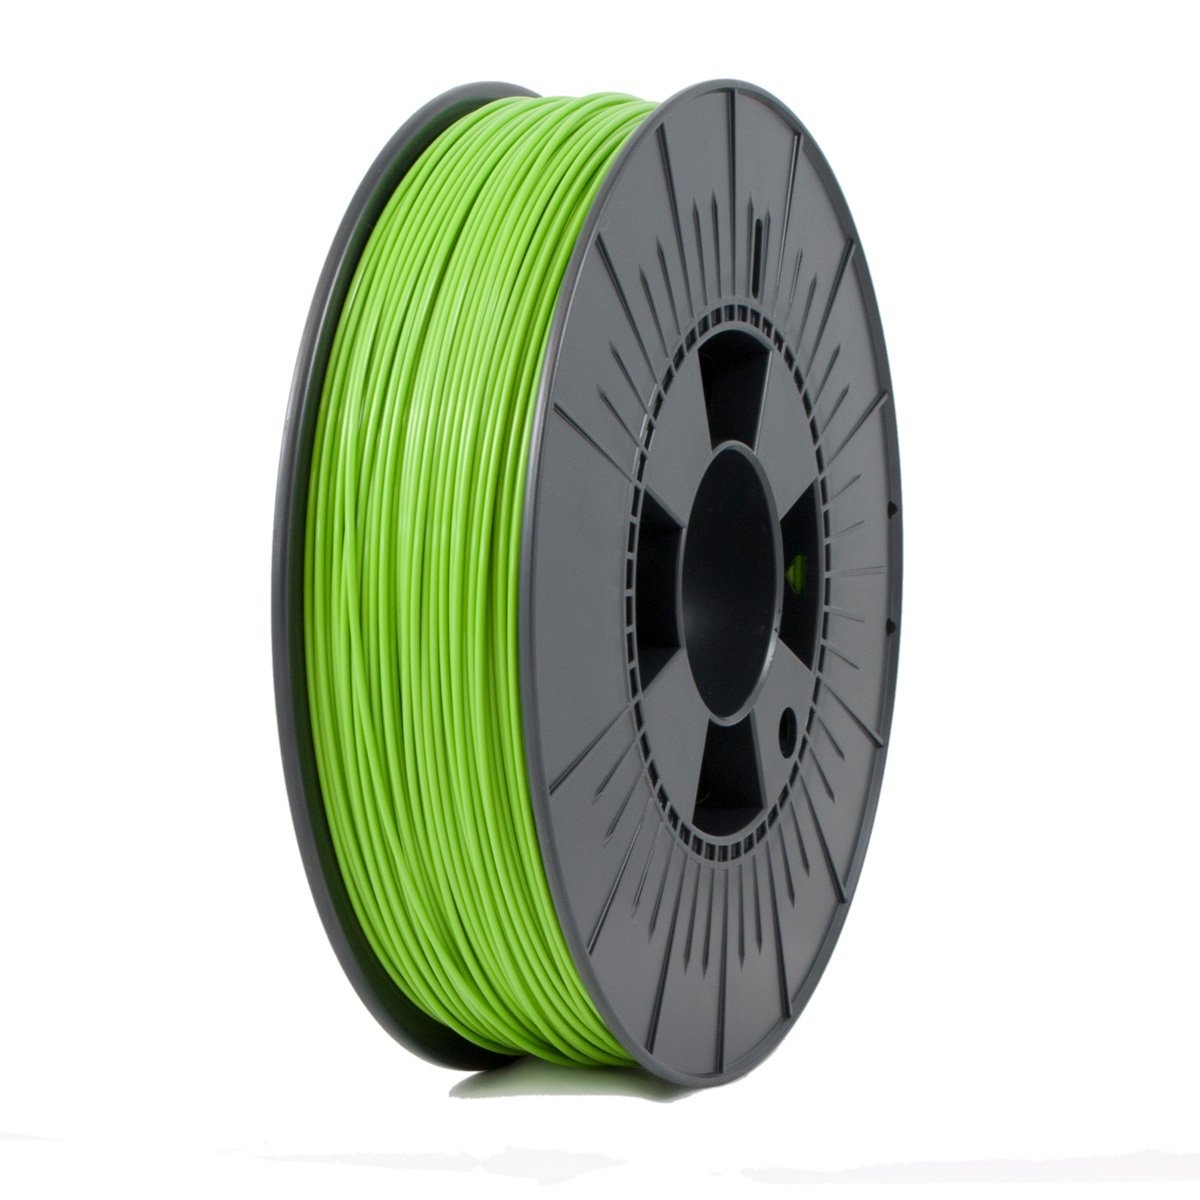 Ice Filaments  Gracious Green ABS 1.75 mm